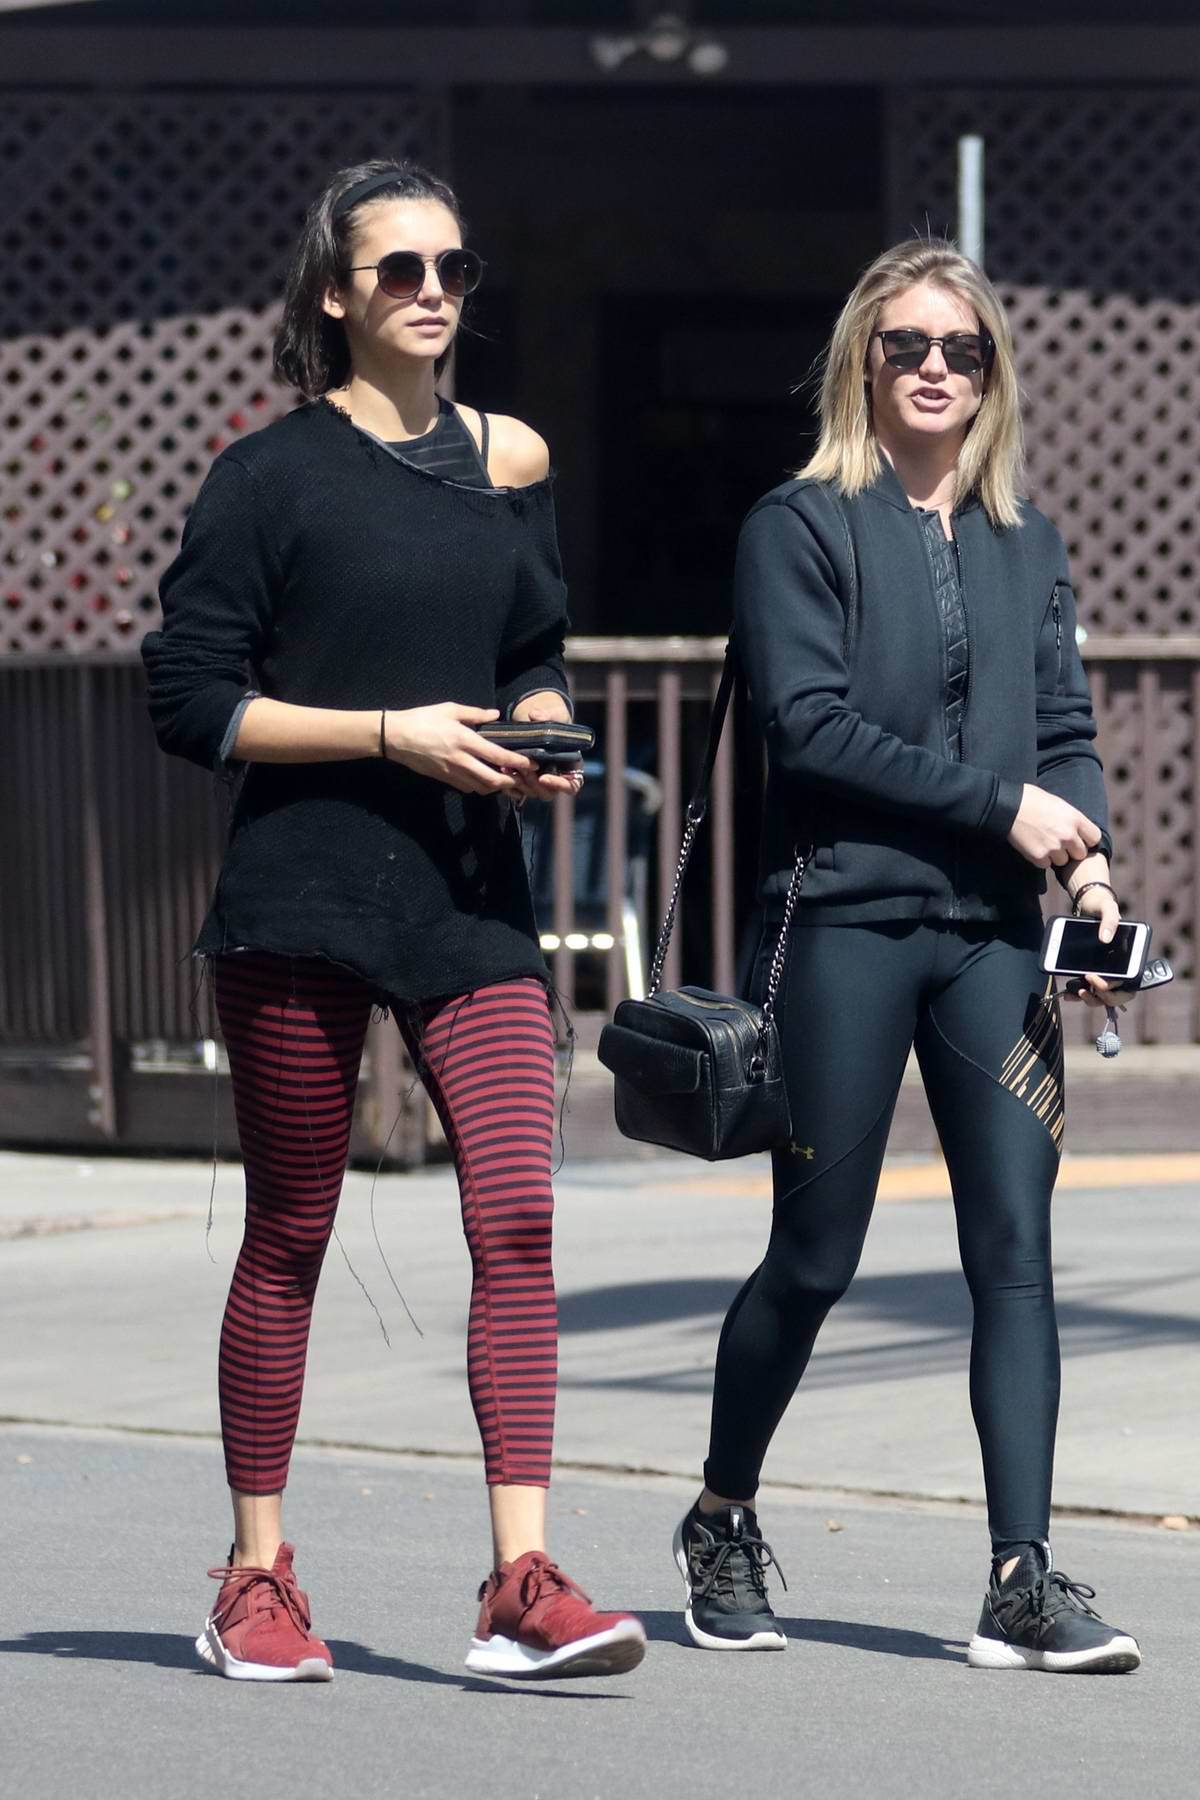 Nina Dobrev spotted leaving a dance class with a friend in Los Angeles